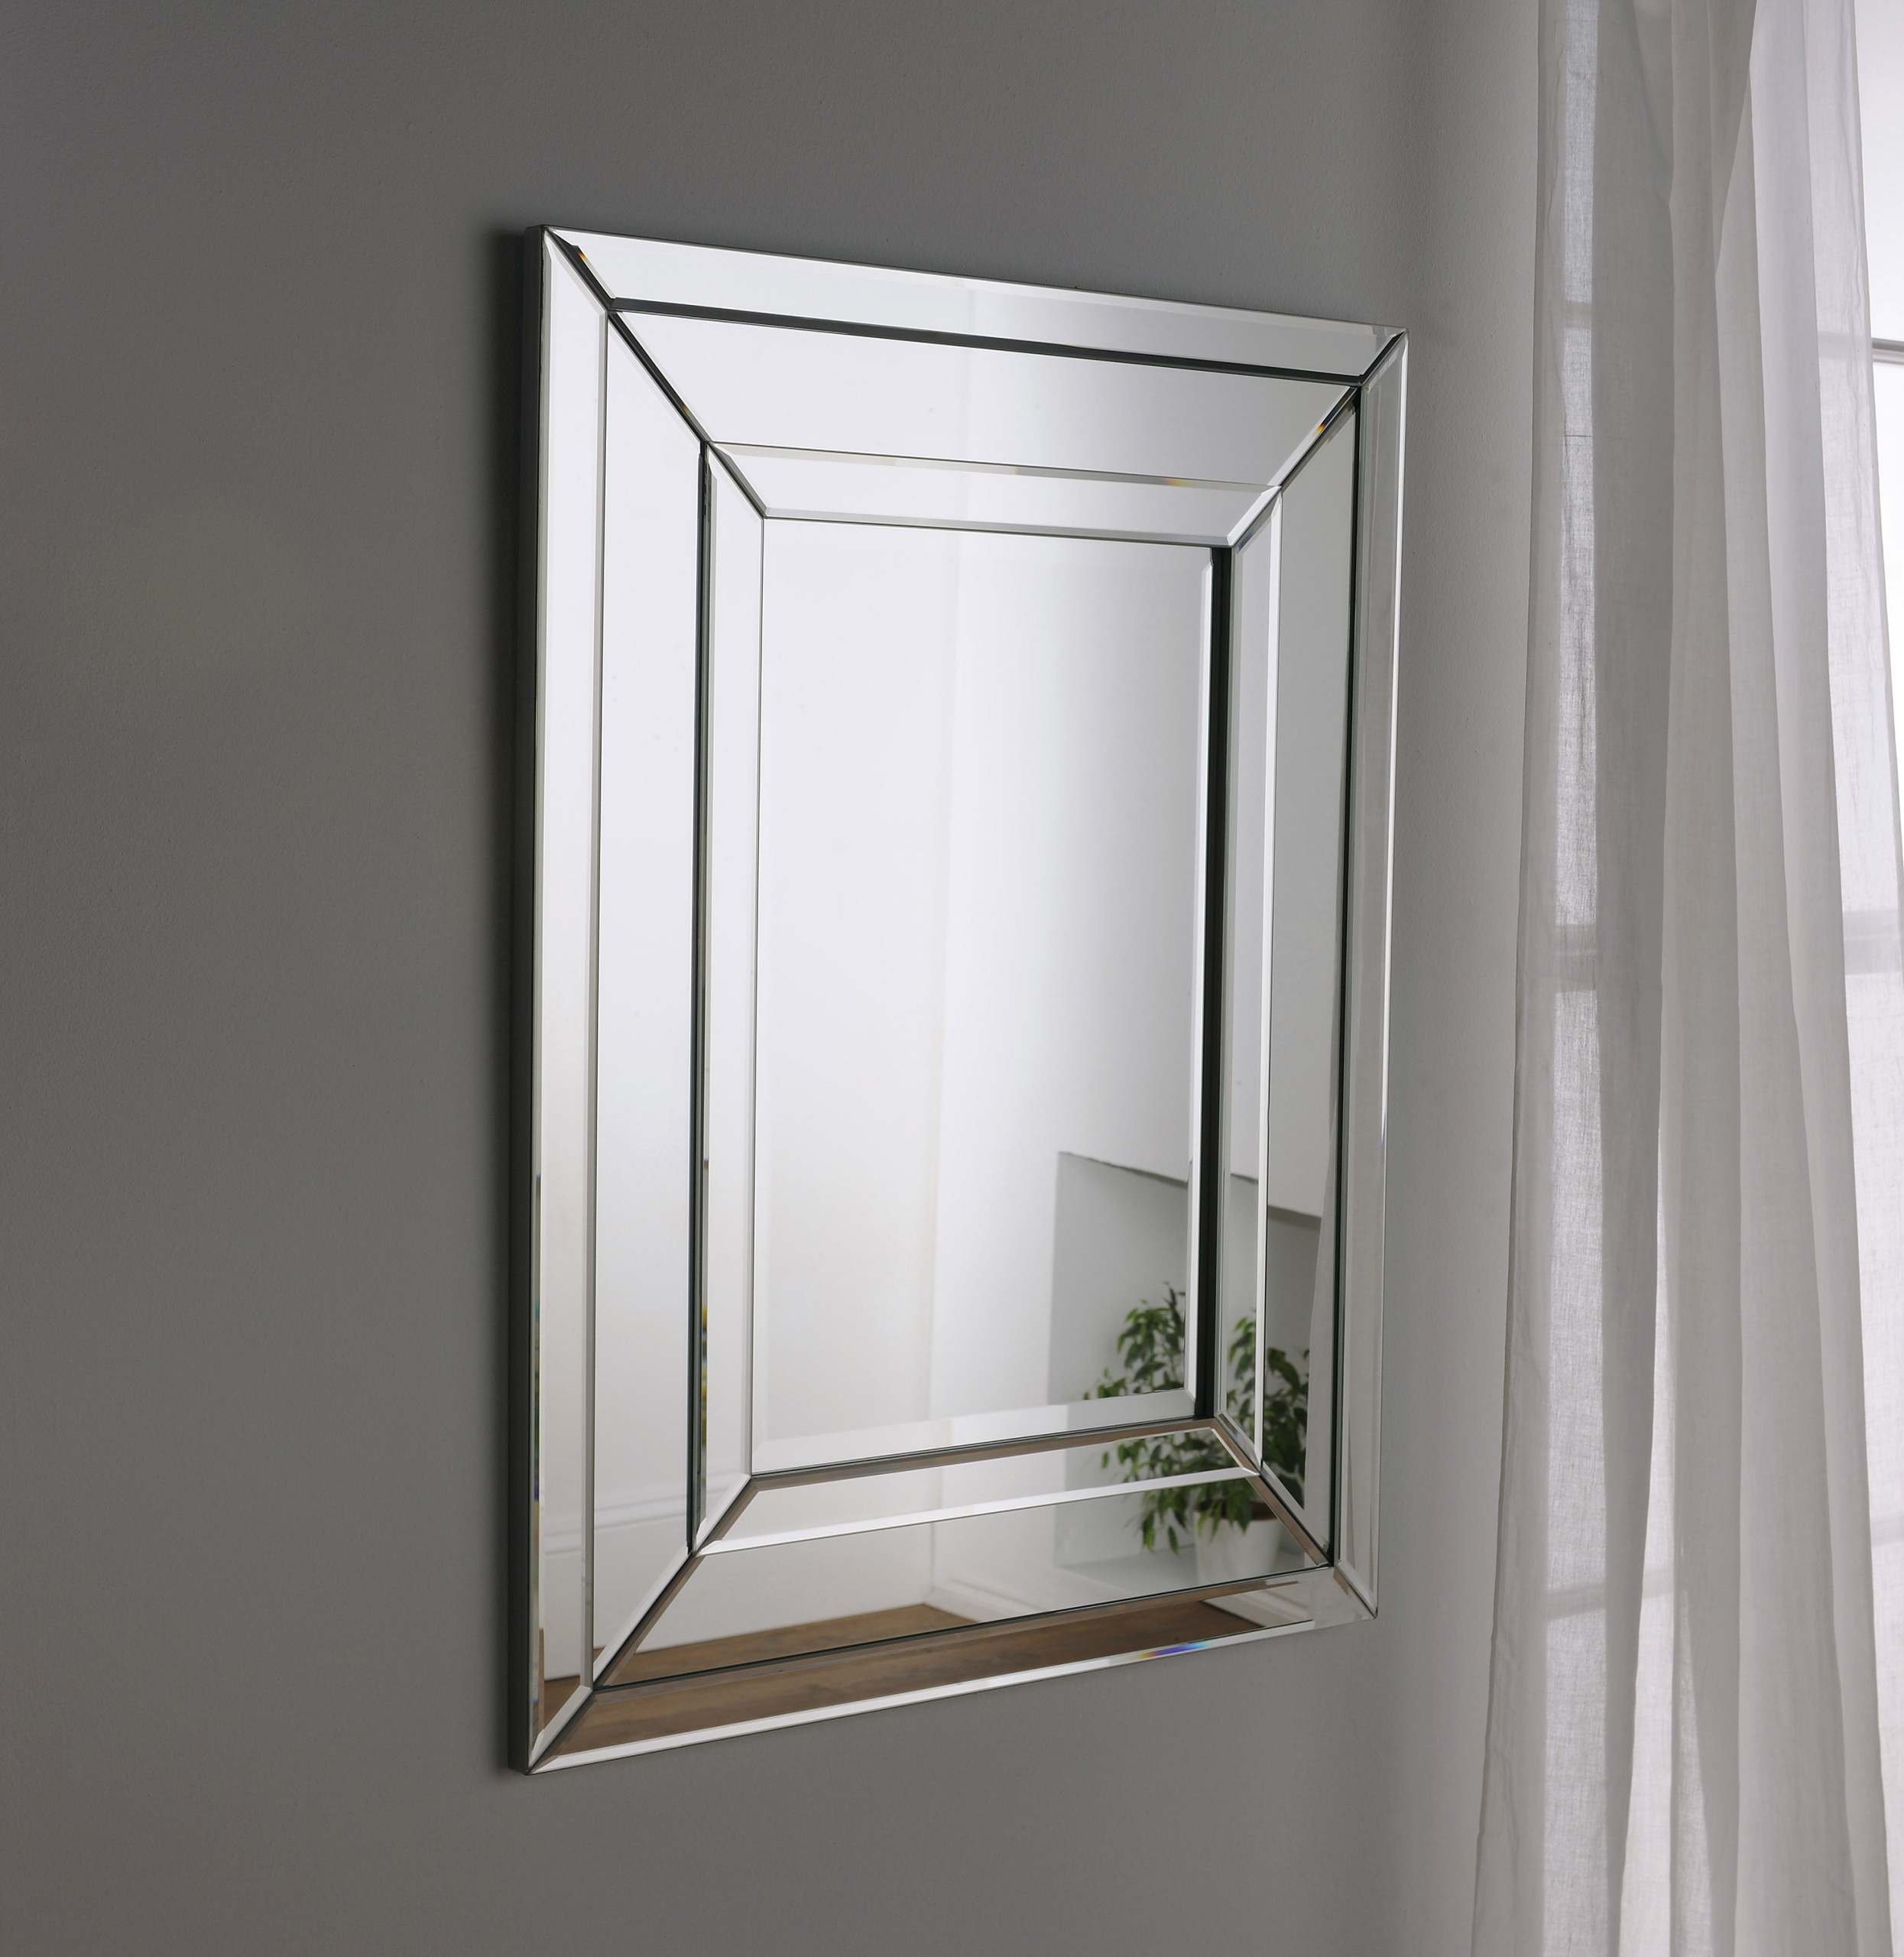 Art480 Mirror Art Deco Wall Mirror Stylish Functional